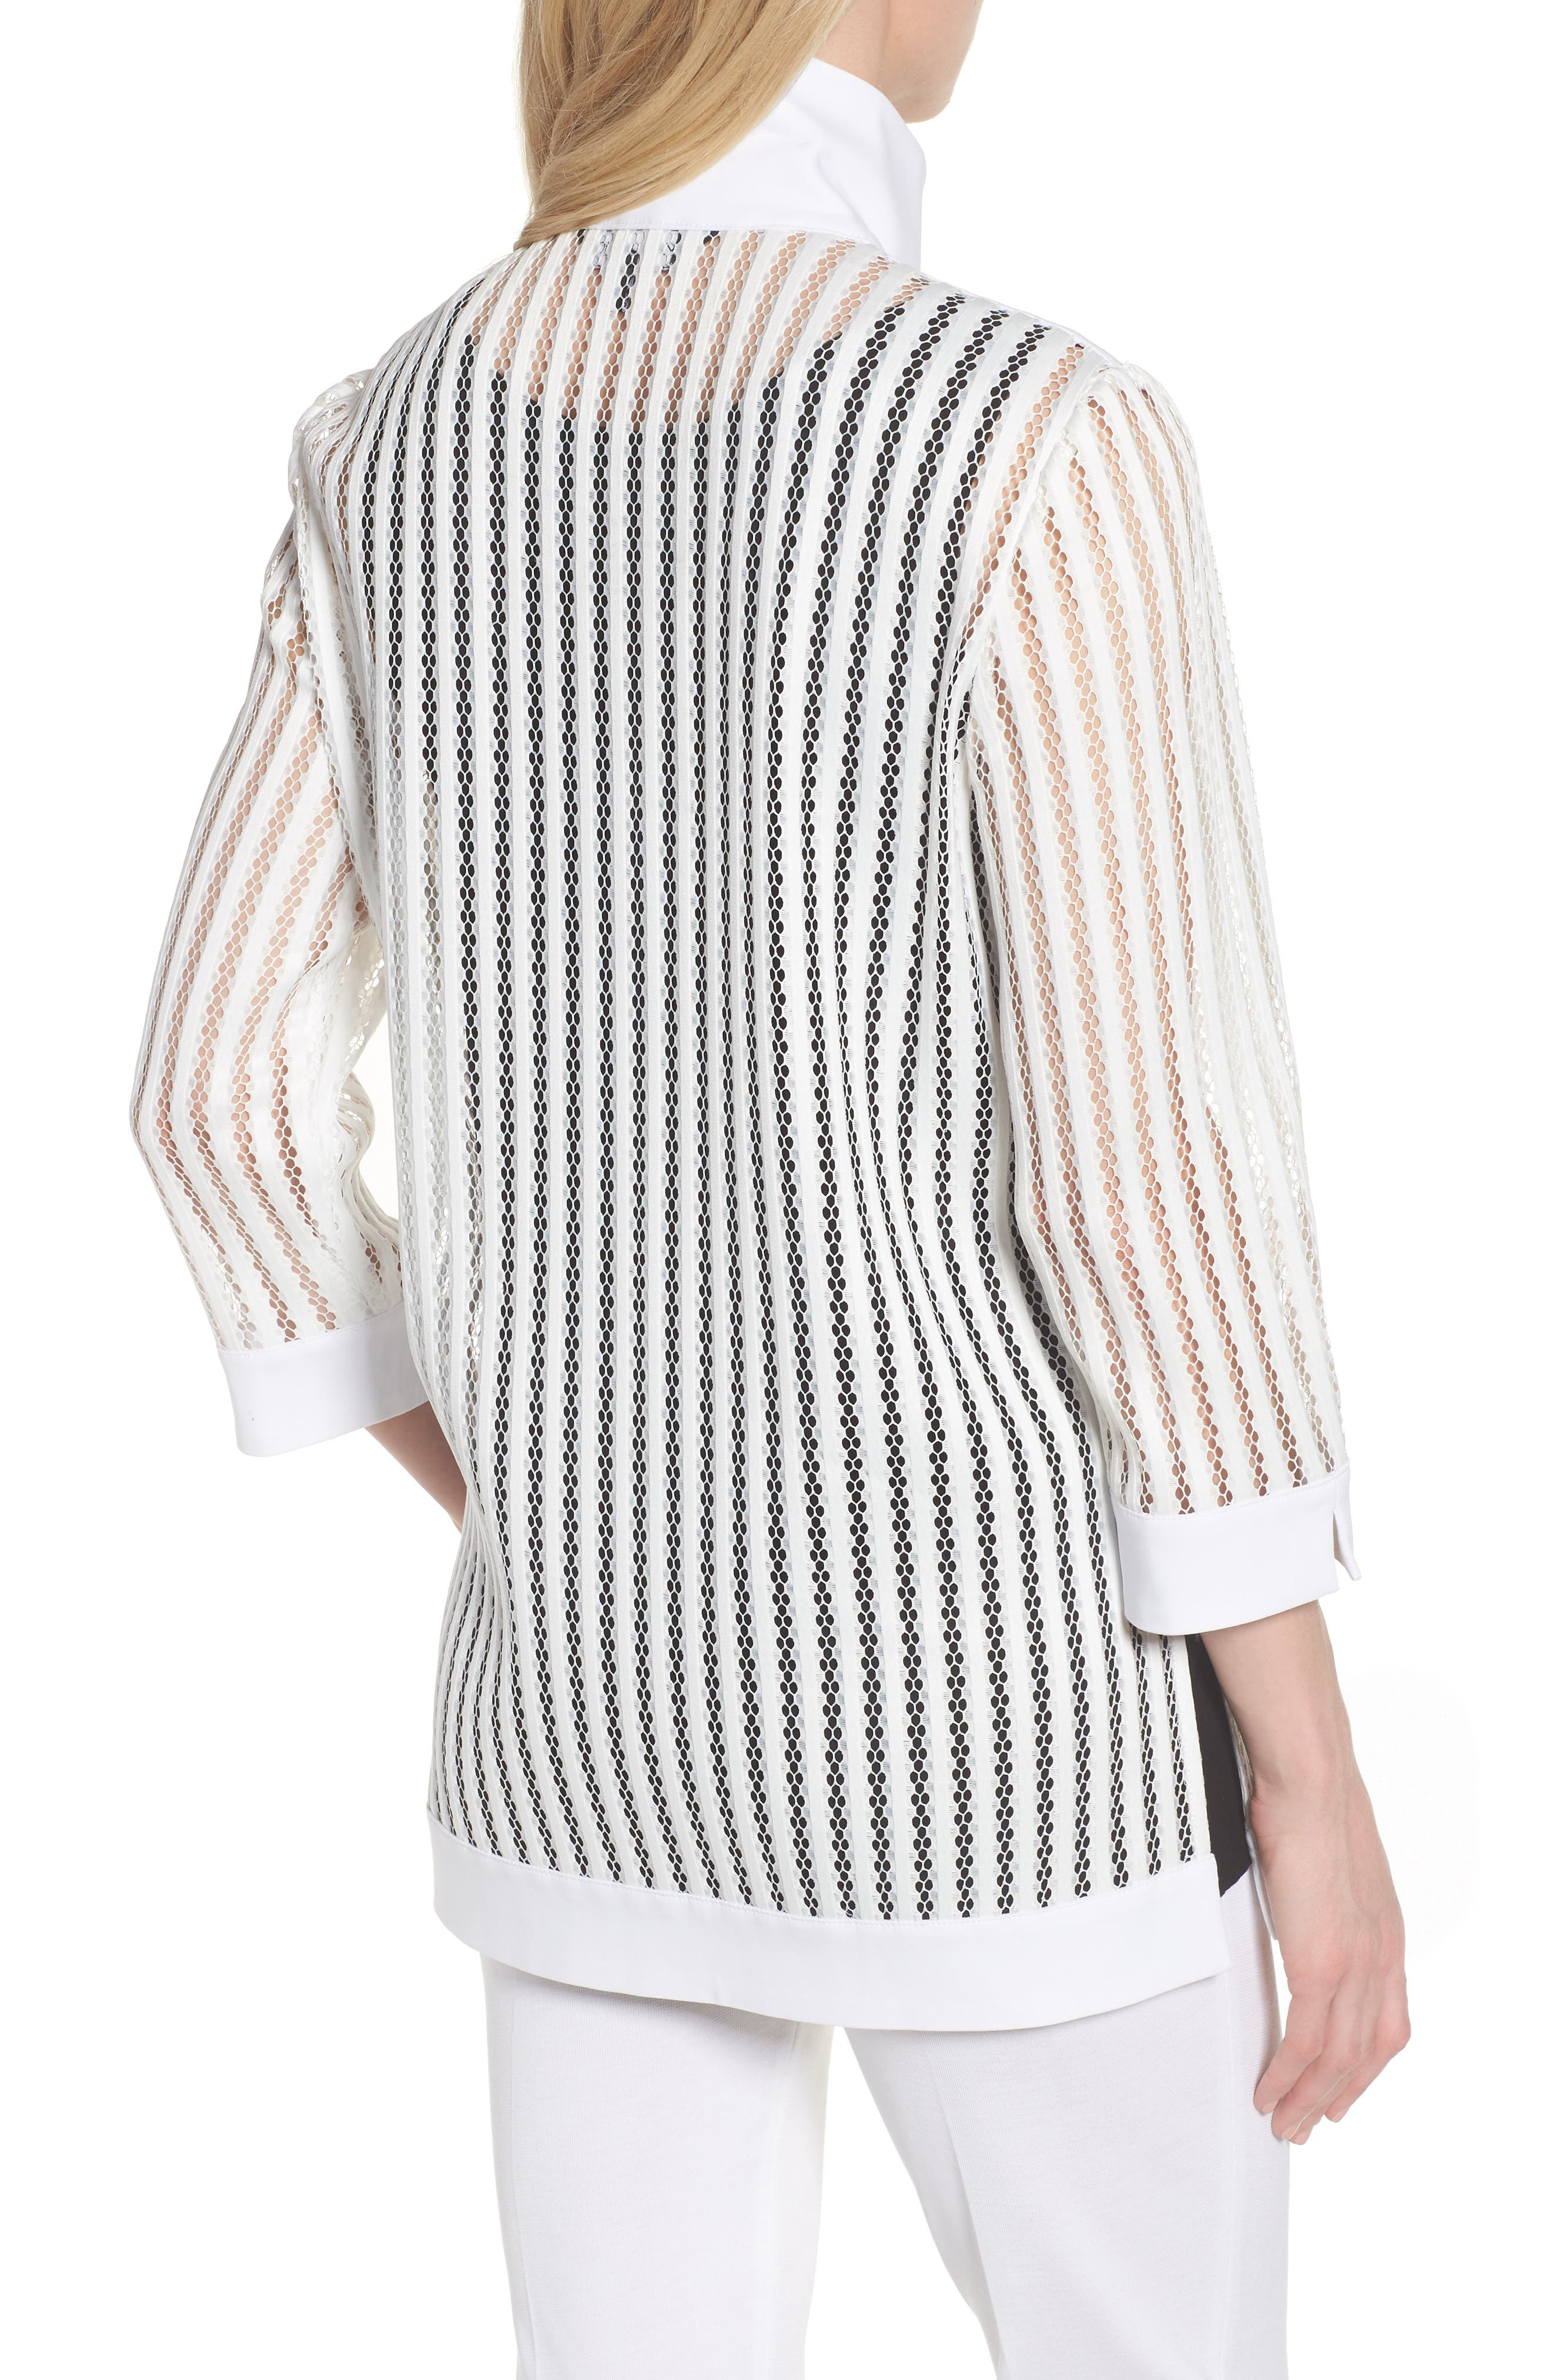 Ming Mang Open Stitch Sweater Jacket,                             Alternate thumbnail 2, color,                             White/ Black